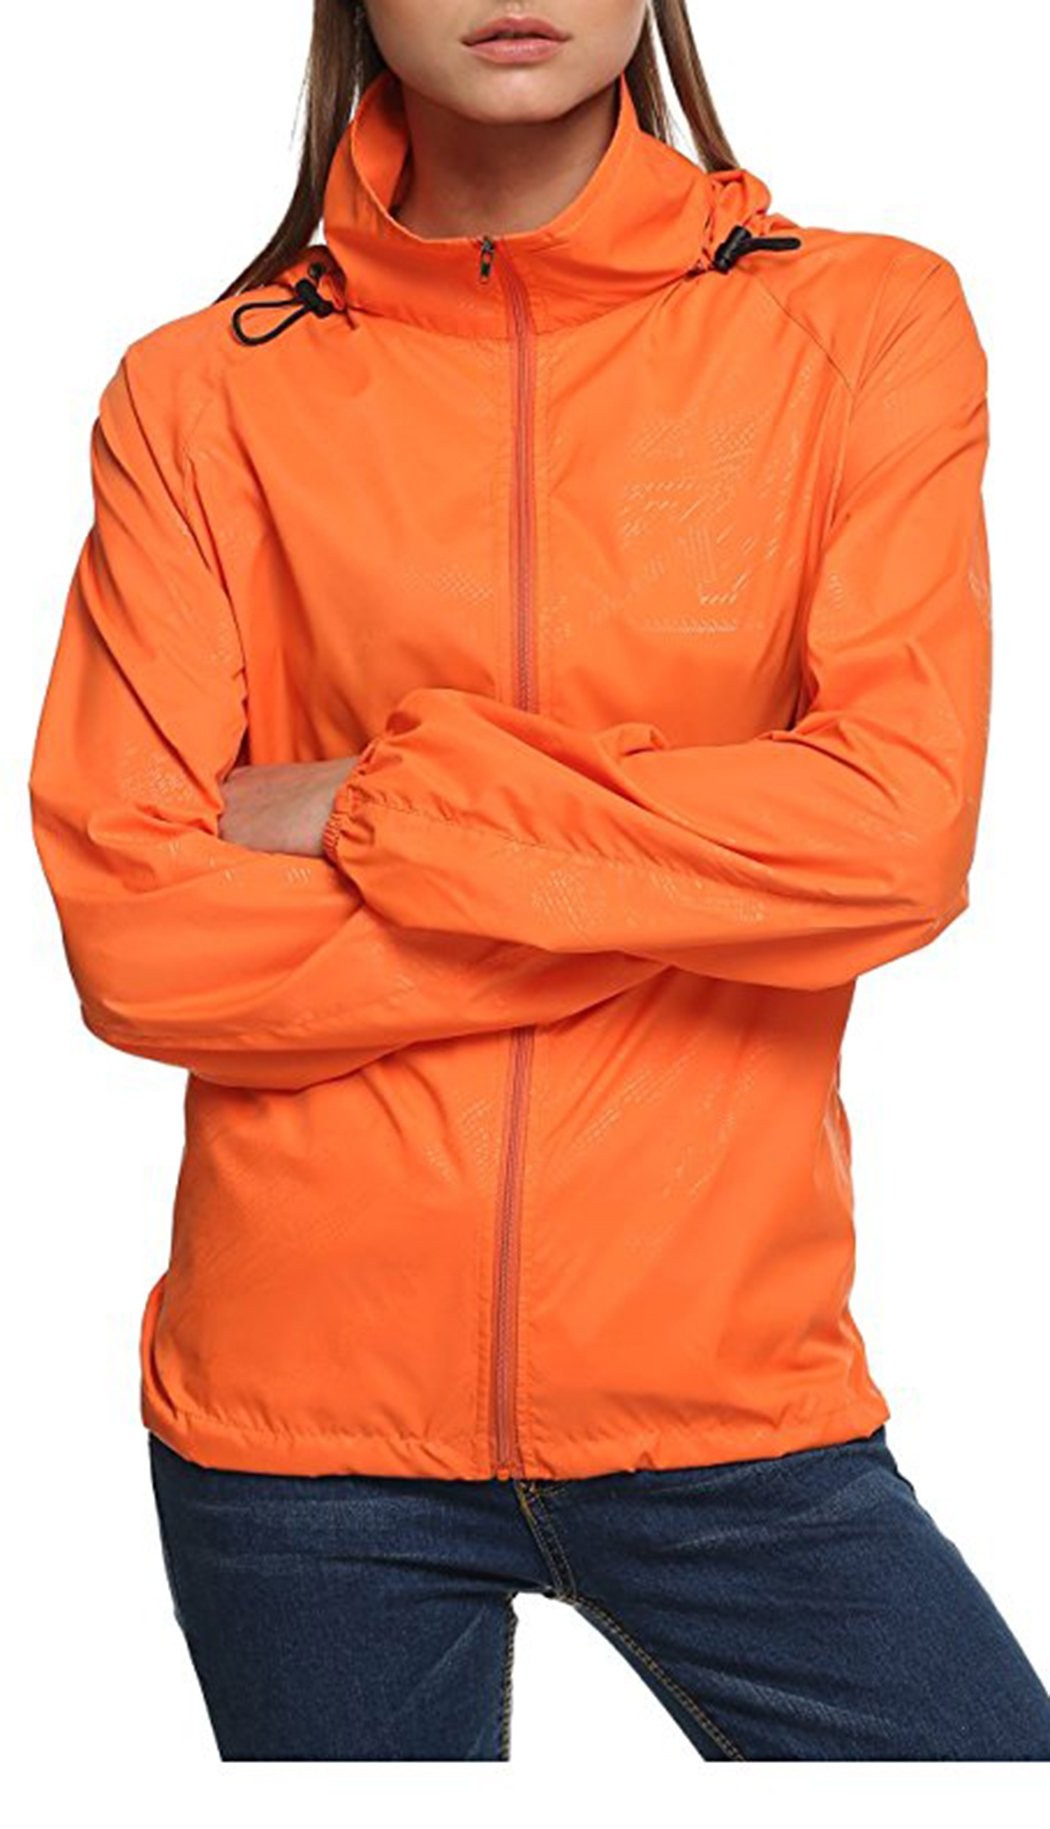 Sawadikaa Women's Super Lightweight Running Jacket Quick Dry Skin Windbreaker Sun Protect Coat Orange S